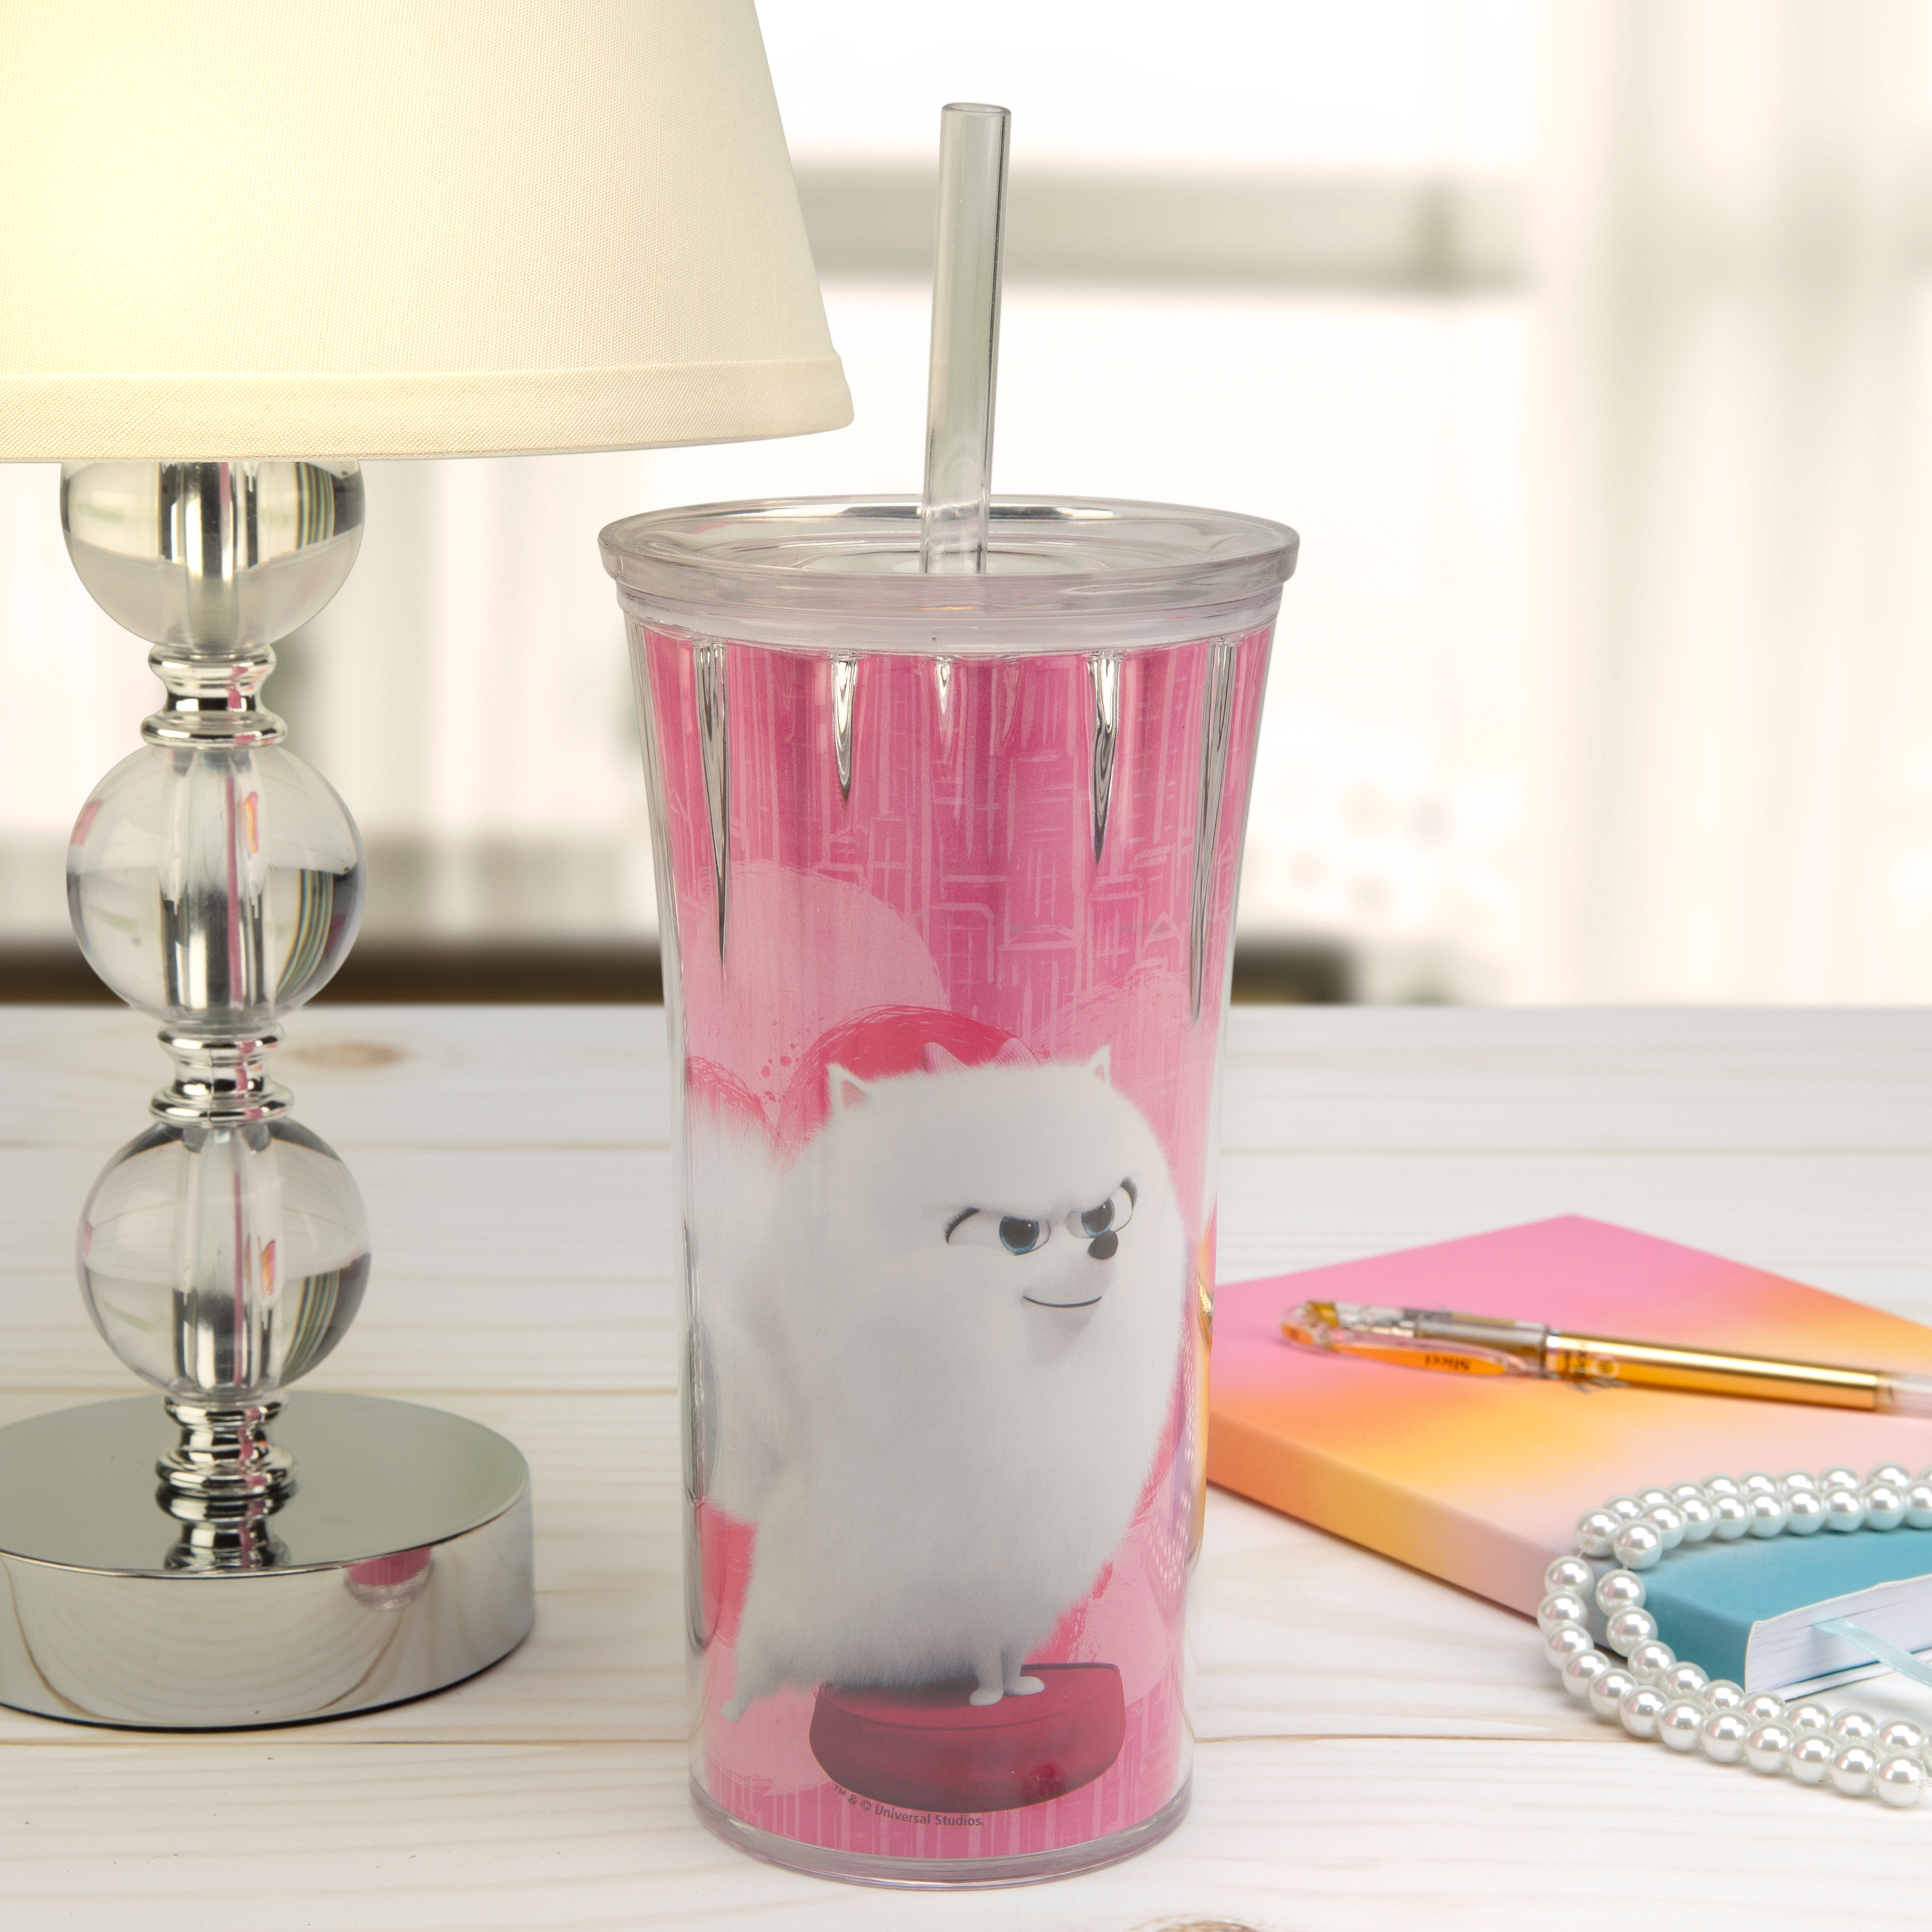 Secret Life Of Pets 2 20 ounce Insulated Tumbler, Gidget slideshow image 2